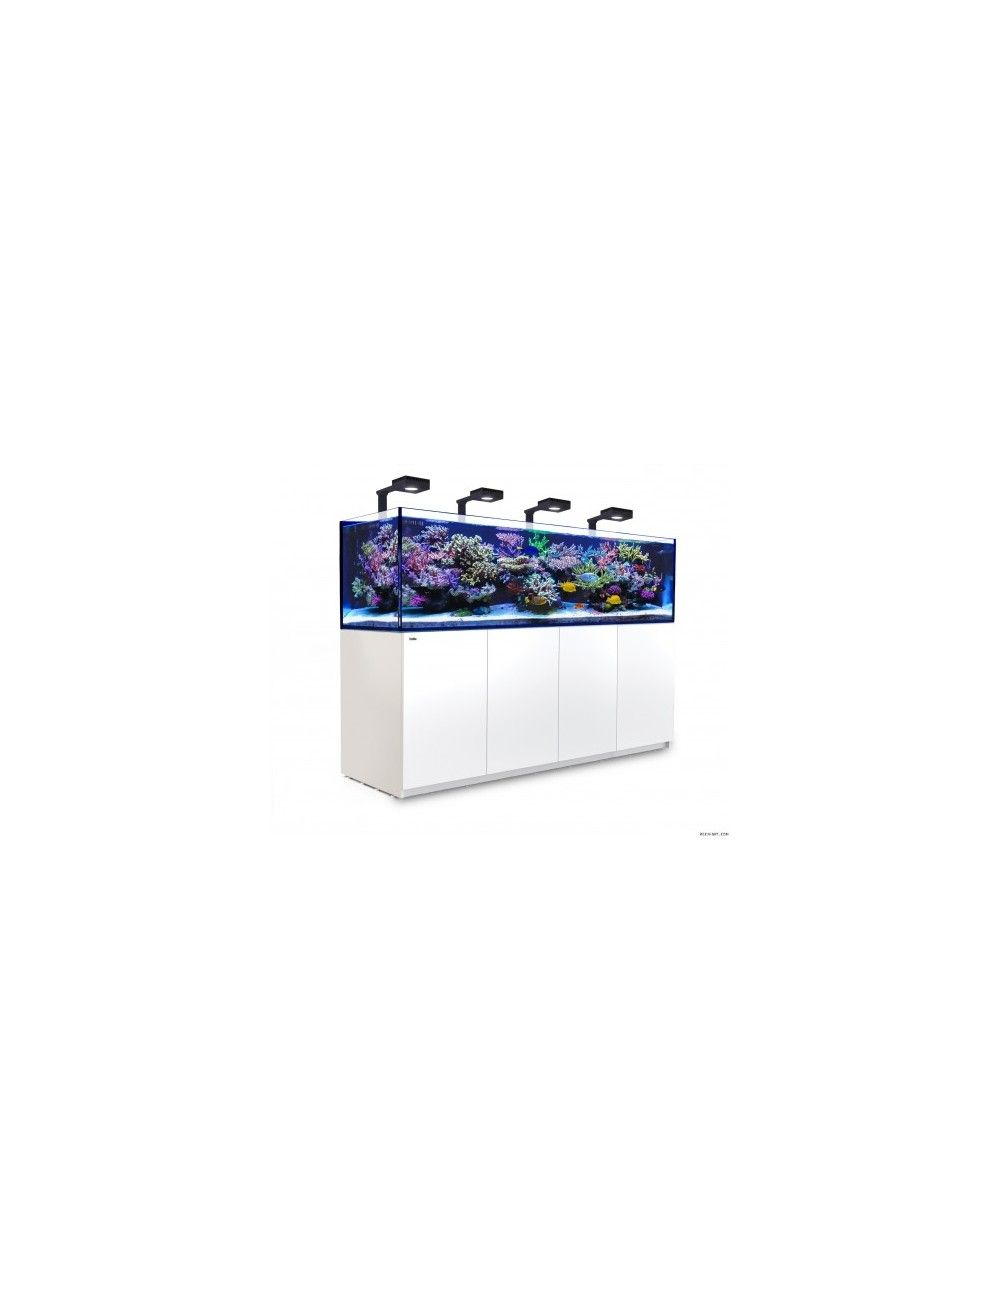 RED SEA - Reefer Deluxe 3XL 900 - Blanc - (4 ReefLED 90 et 4 potences)